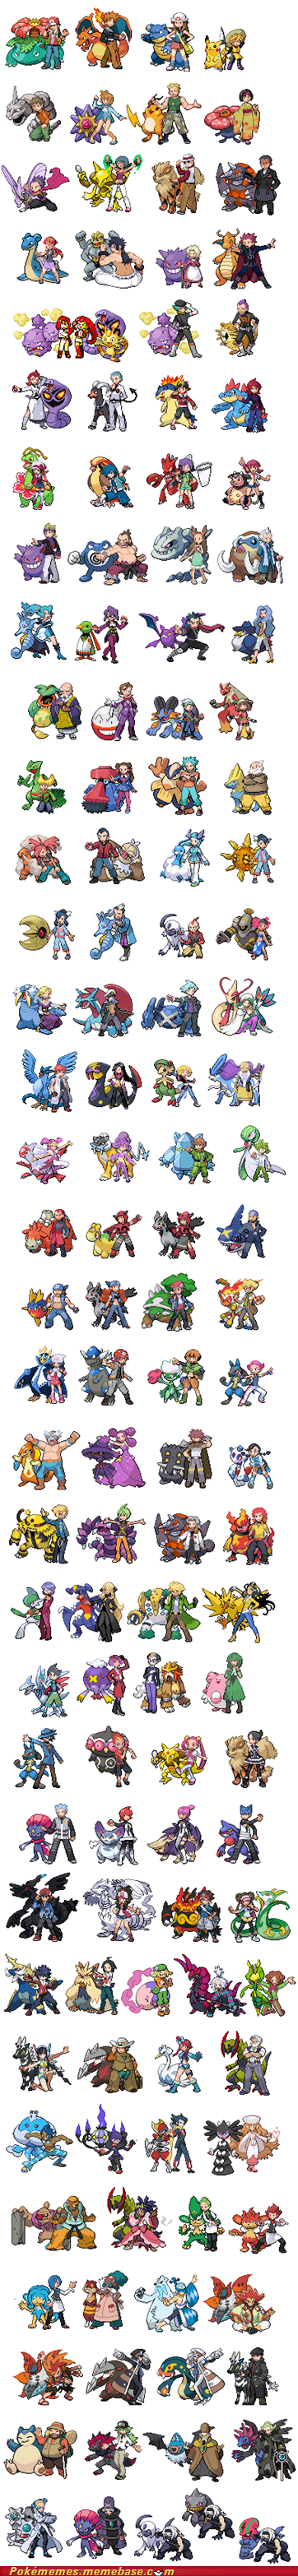 138 Trainers | Favorite Shows | Pinterest | Pokémon, Craft ...